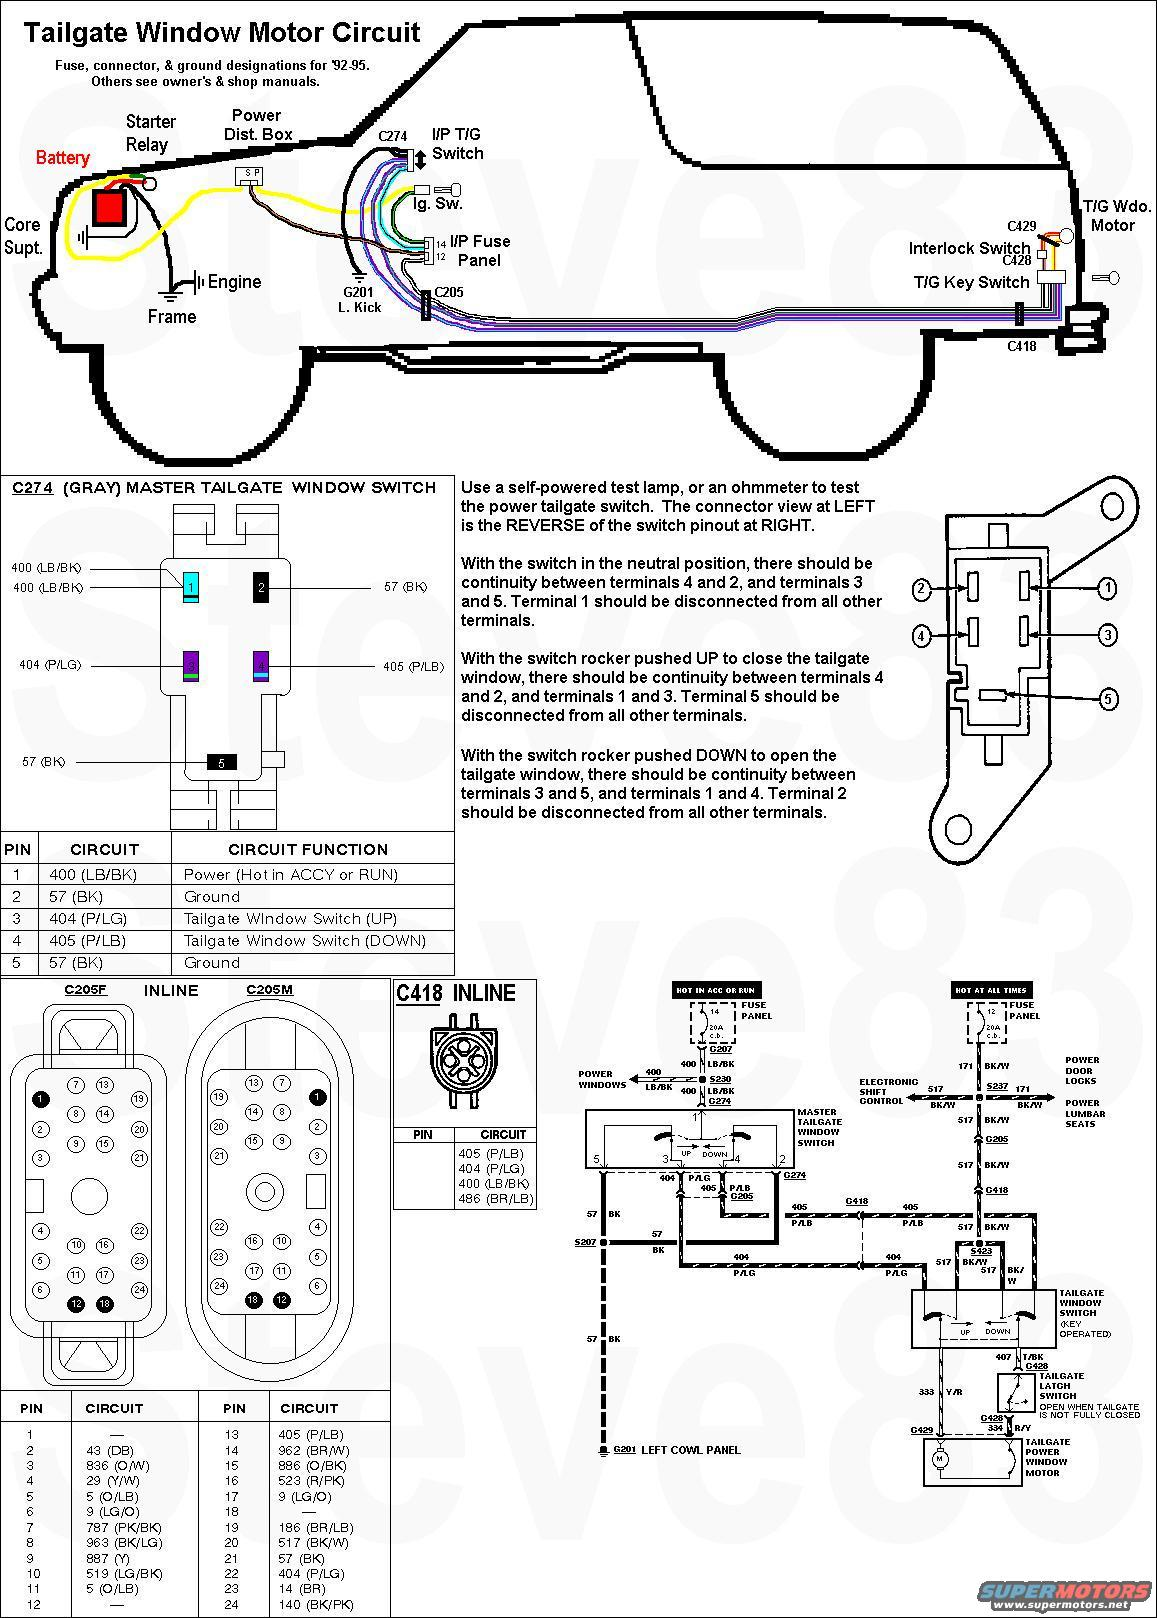 wmtgmotorwiring wiring diagram 1974 ford bronco the wiring diagram readingrat net  at gsmportal.co